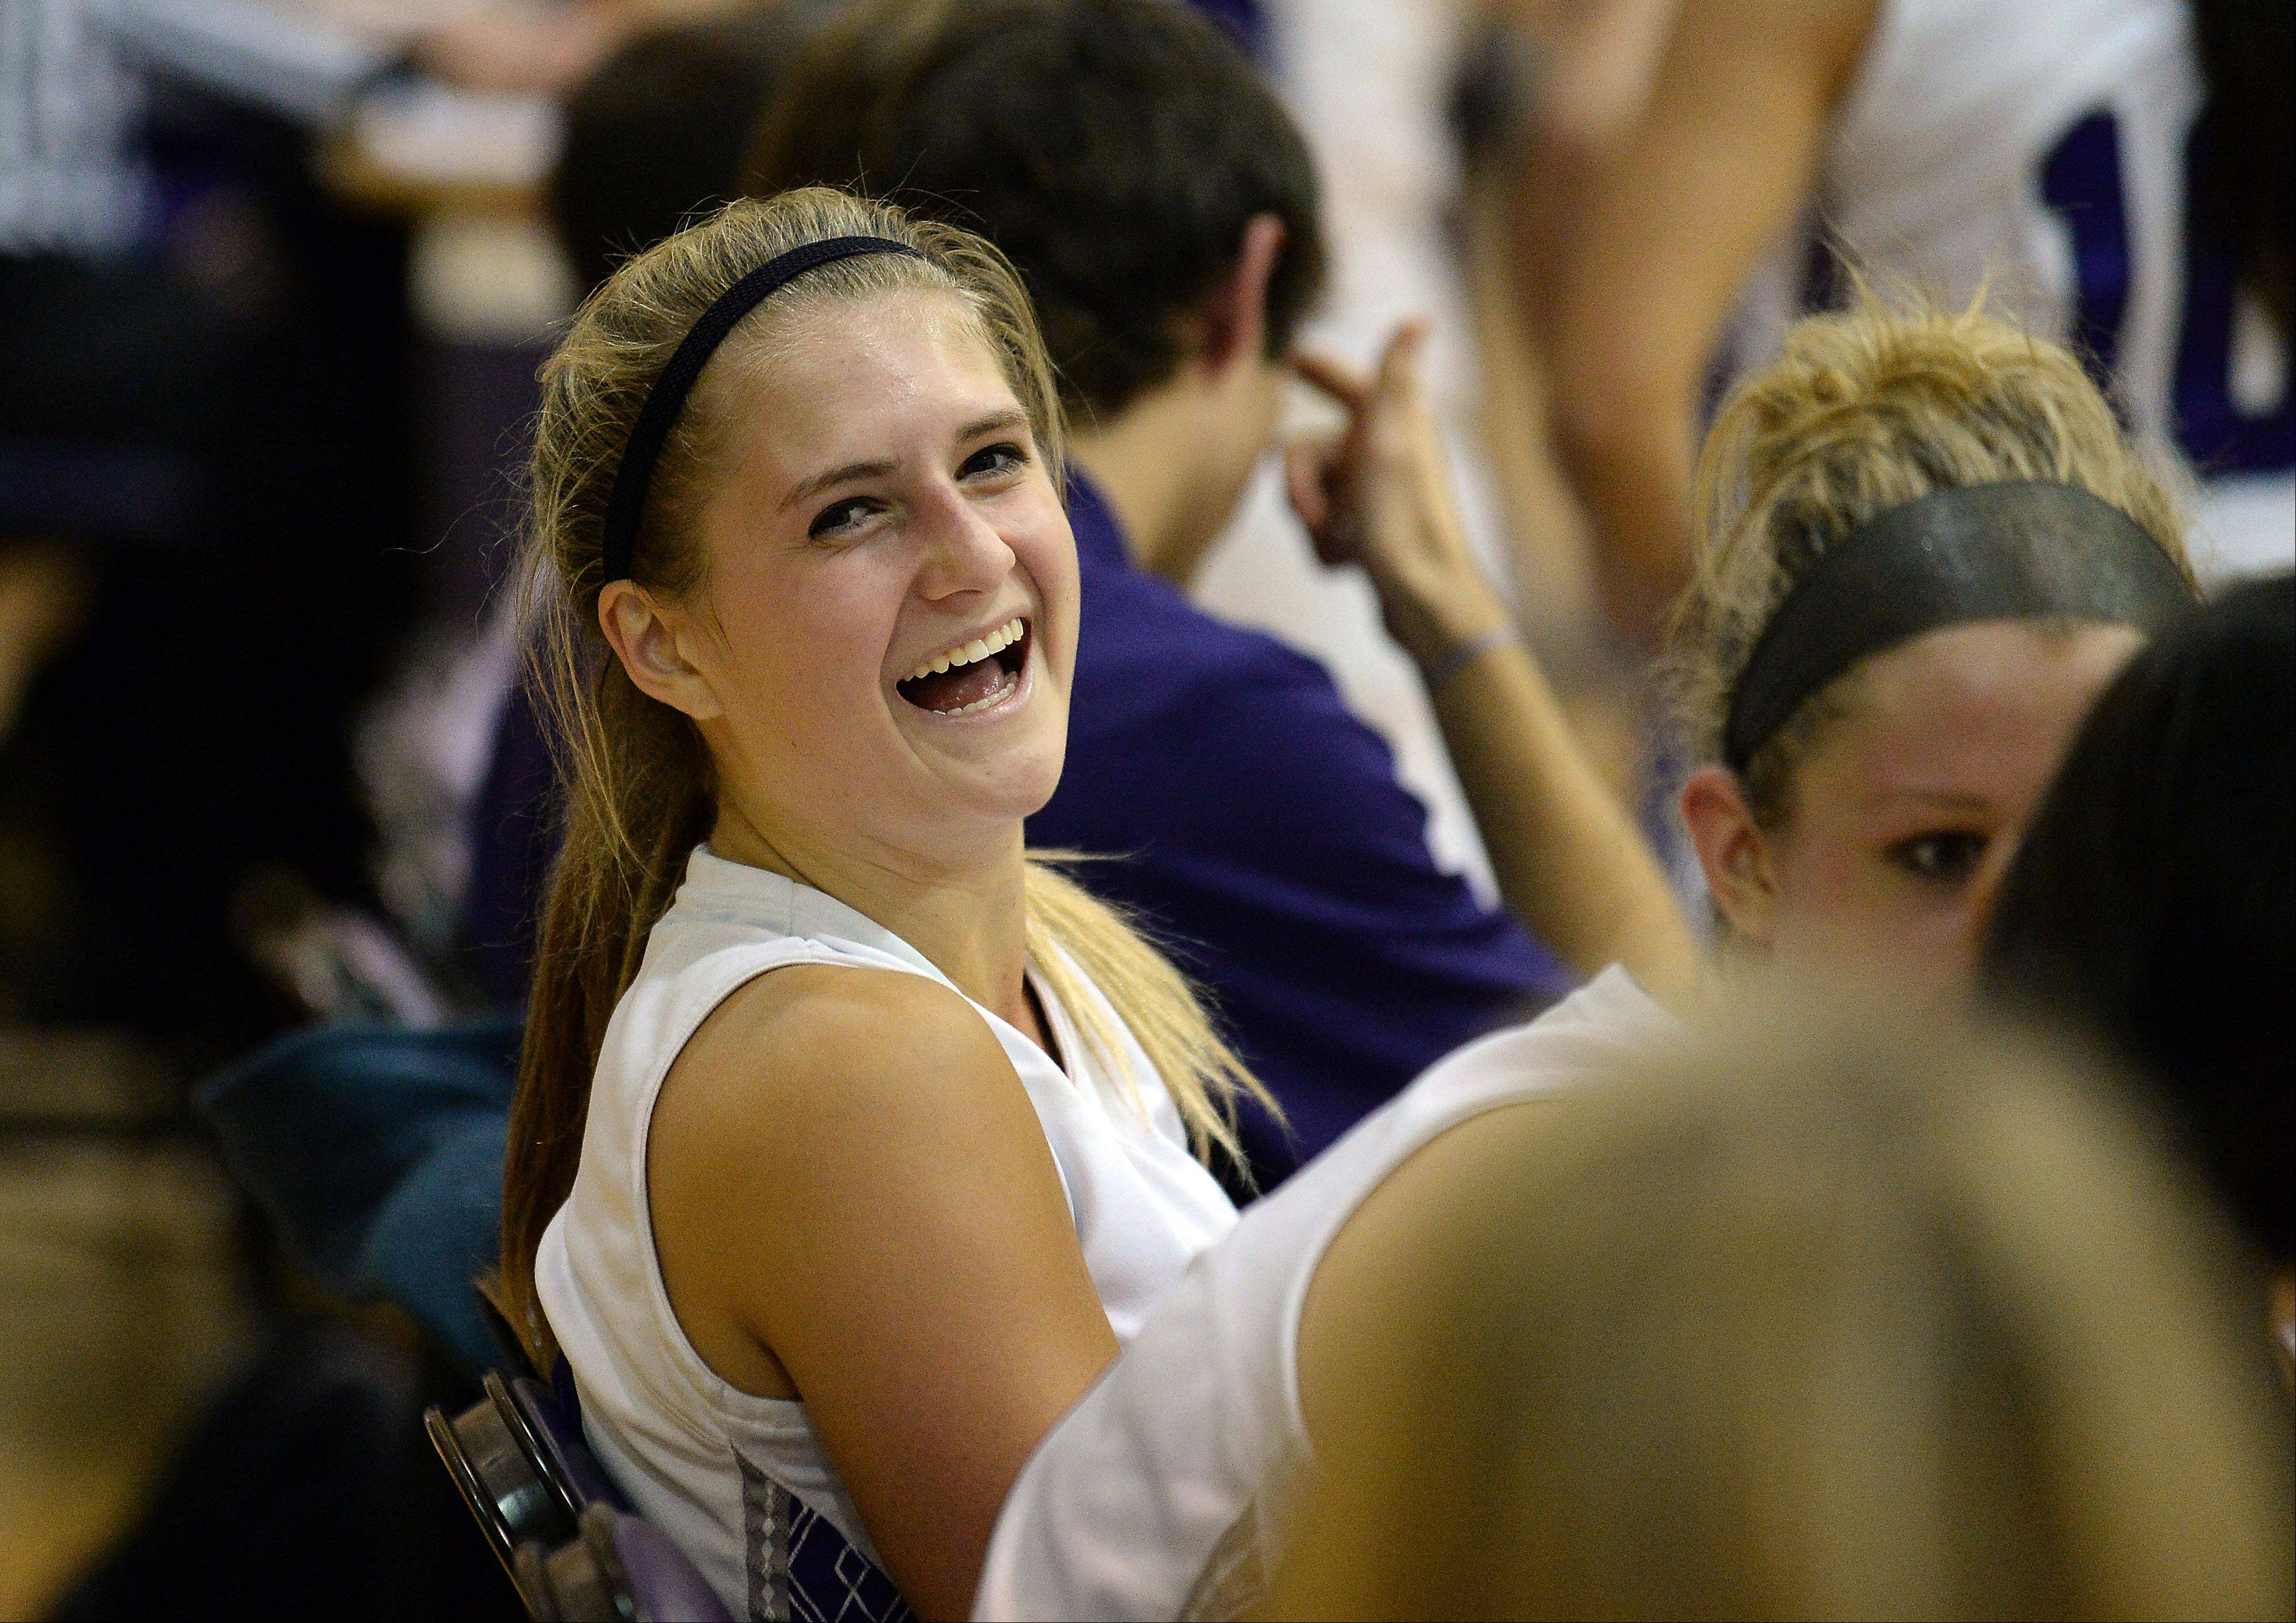 Rolling Meadows' Alexis Glasgow enjoys Thursday's season opener against Cary-Grove, during which the Northwestern recruit eclipsed the 1,000-point mark in a 75-59 Mustangs triumph.